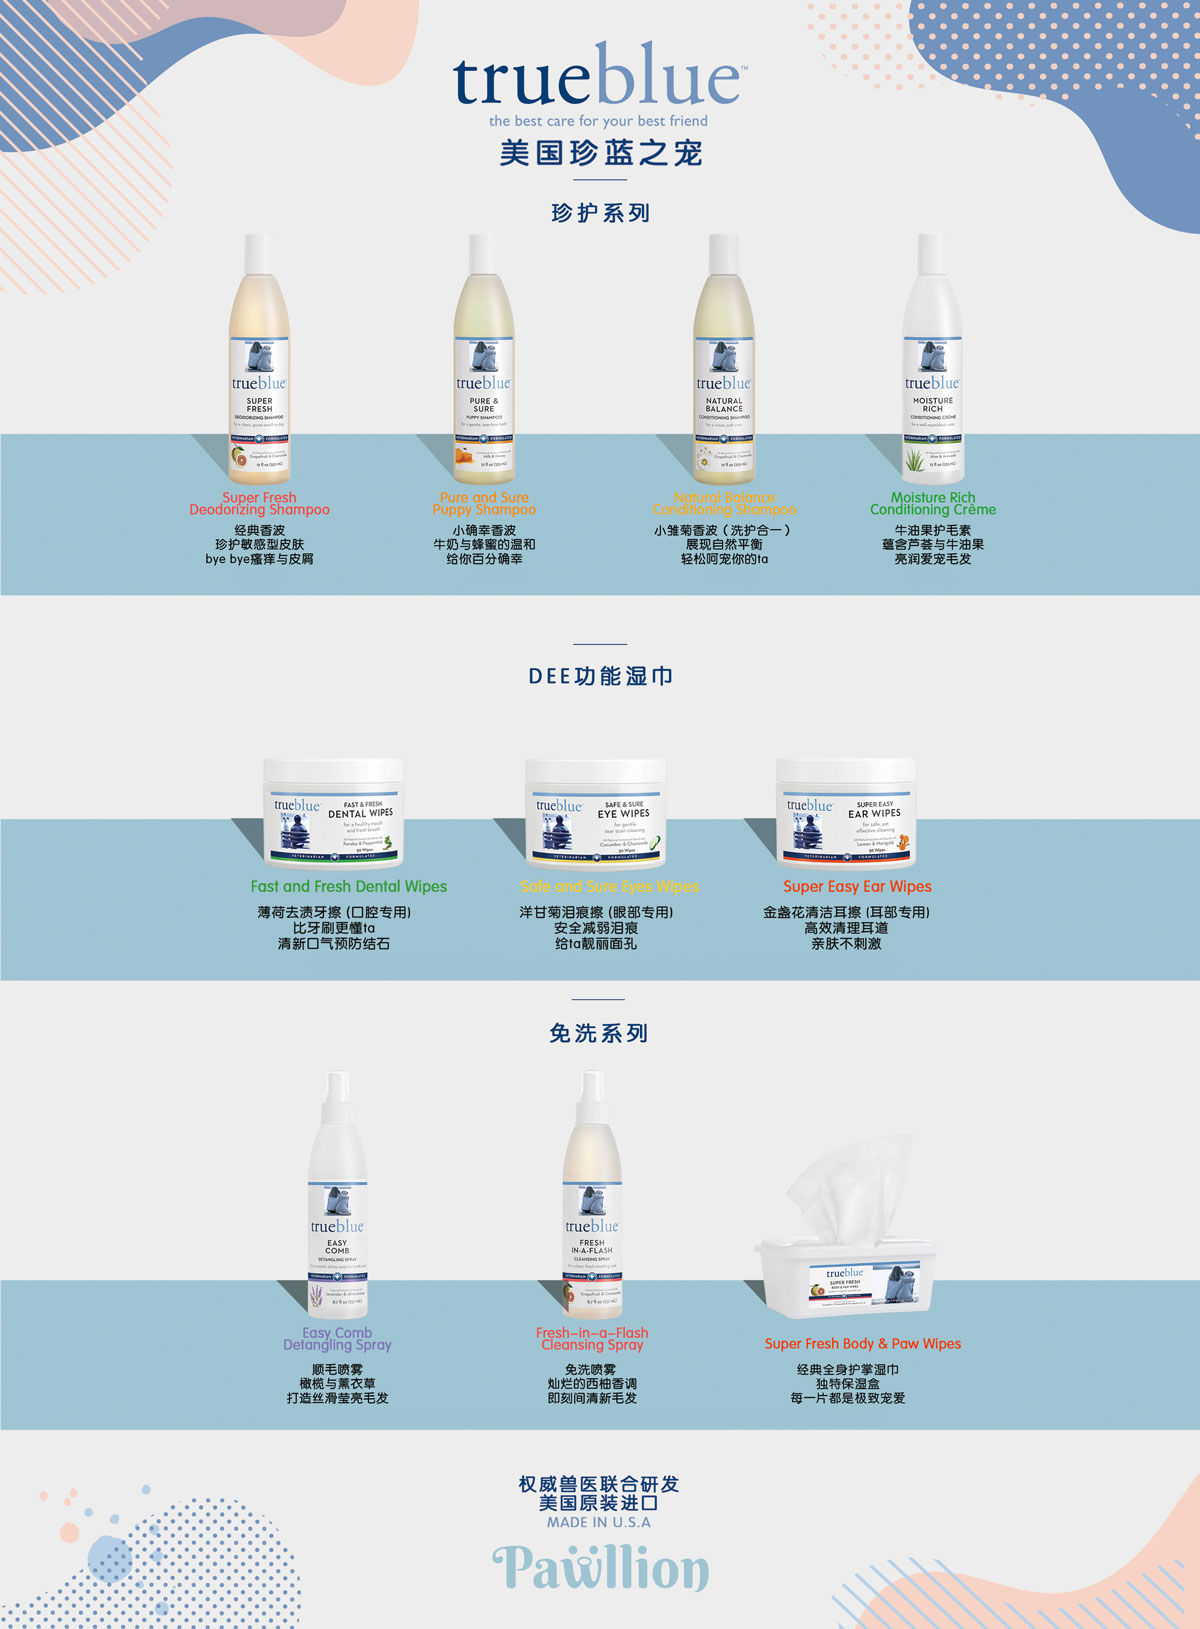 Represent as Trueblue Pet Product's exclusive distributor in China Mainland market and launched whole line of all-natural pet care products